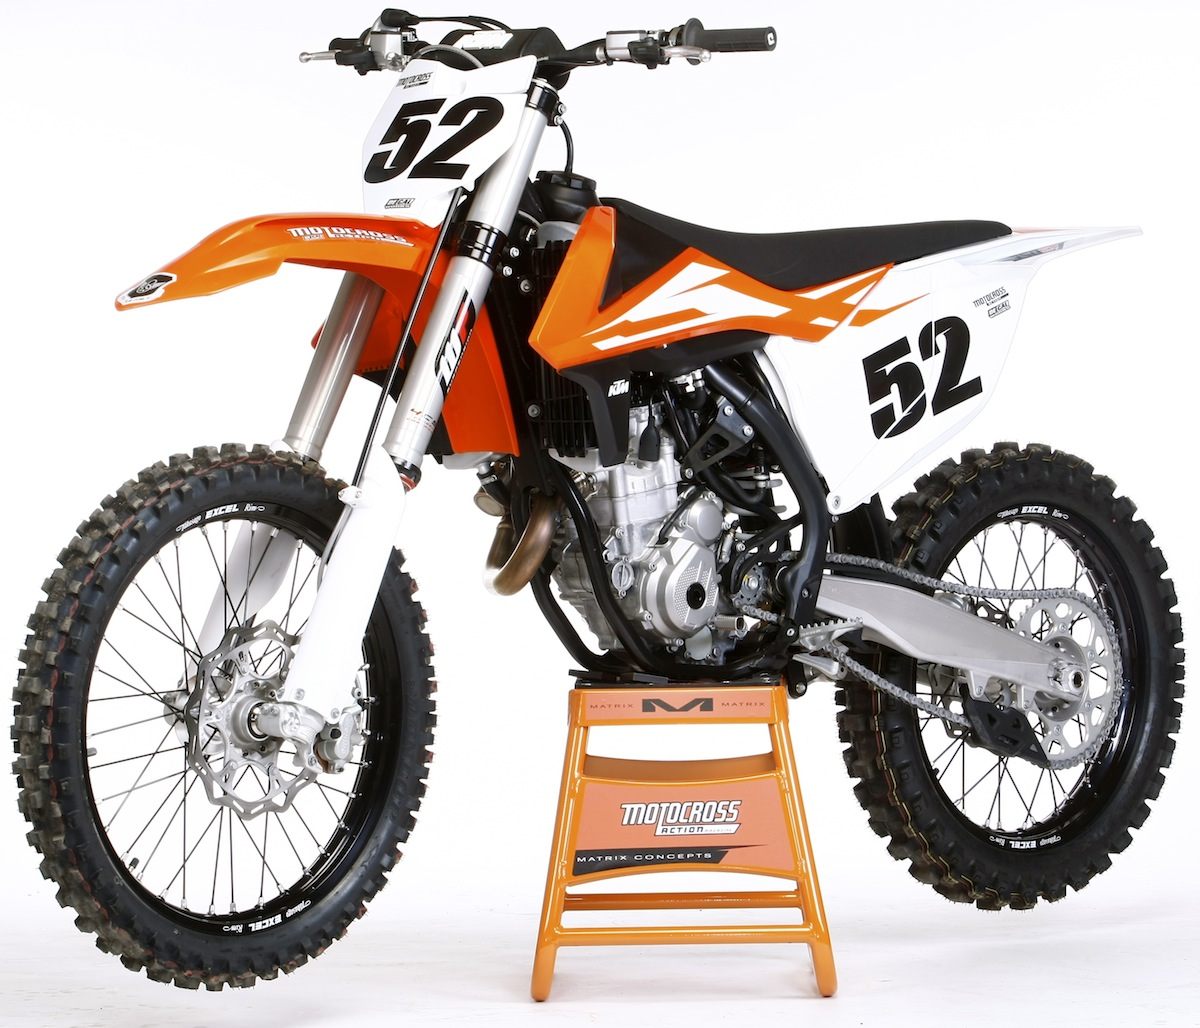 Q: WHAT ARE THE 10 BIG CHANGES TO THE 2016 KTM 350SXF?